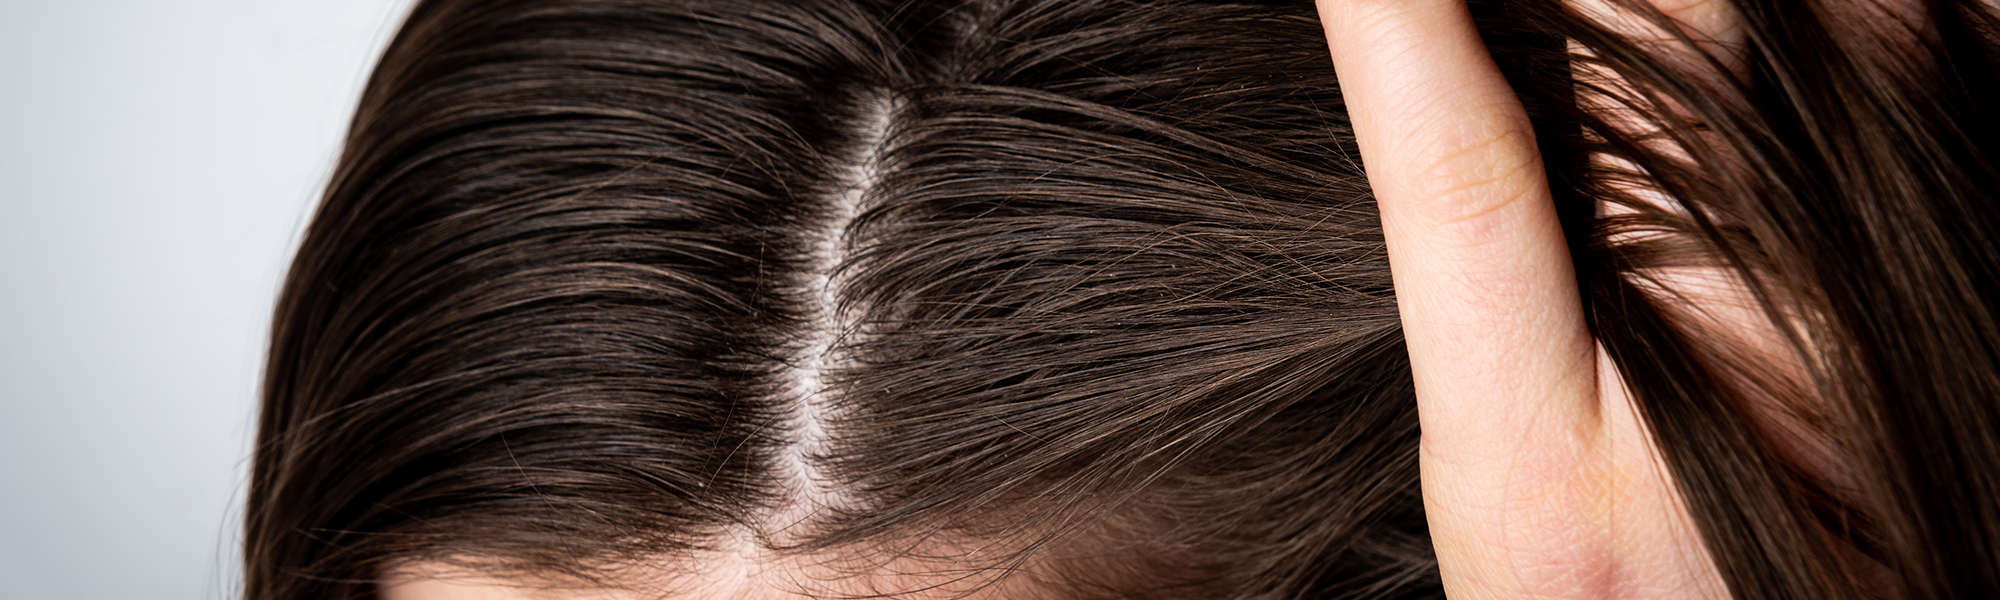 Natural Remedies for Dandruff – Combating the Common Condition